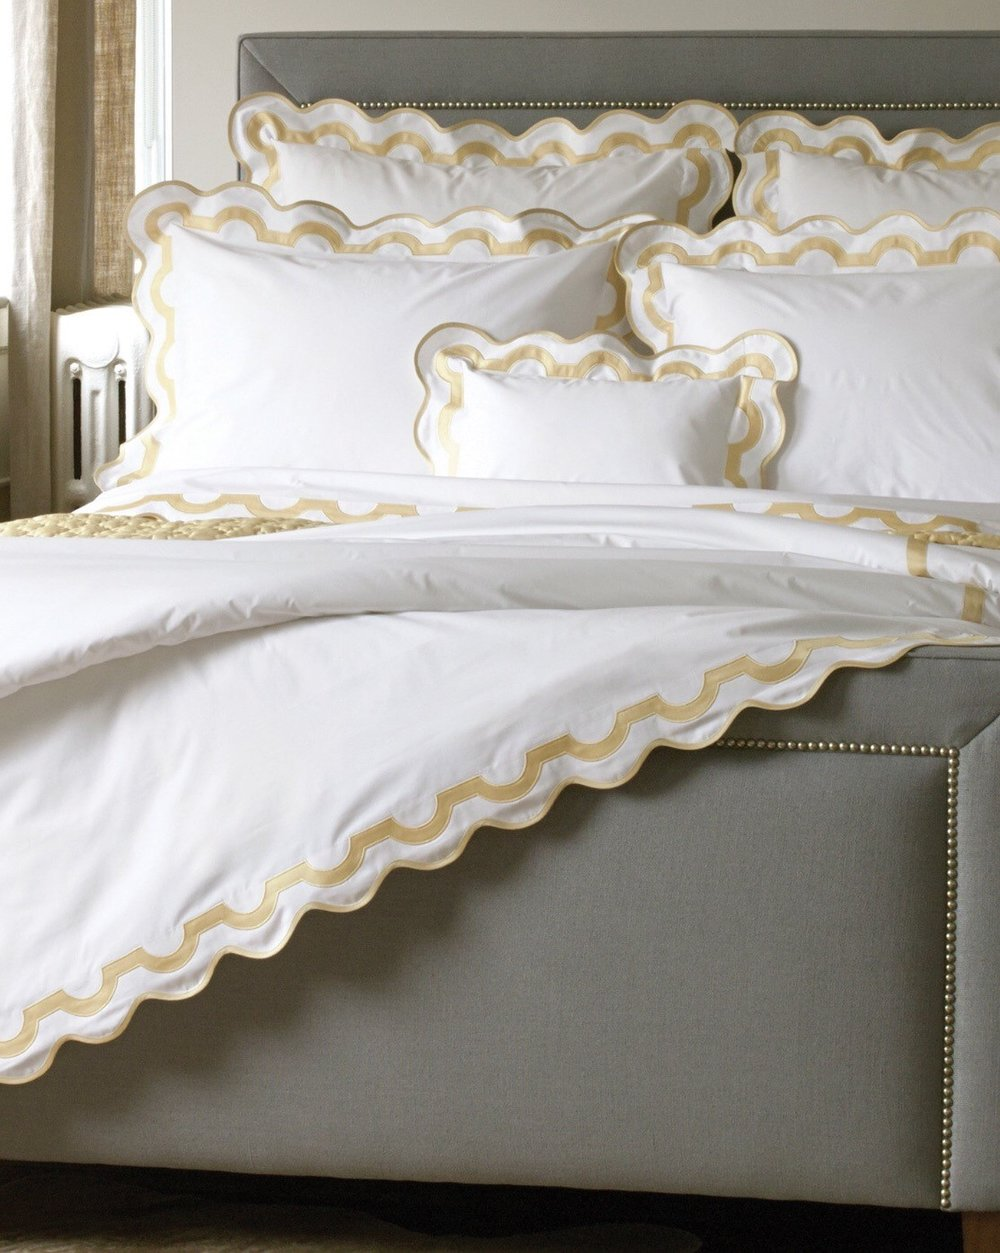 Matouk Mirasol Sheets can be special ordered at the SCW Showroom